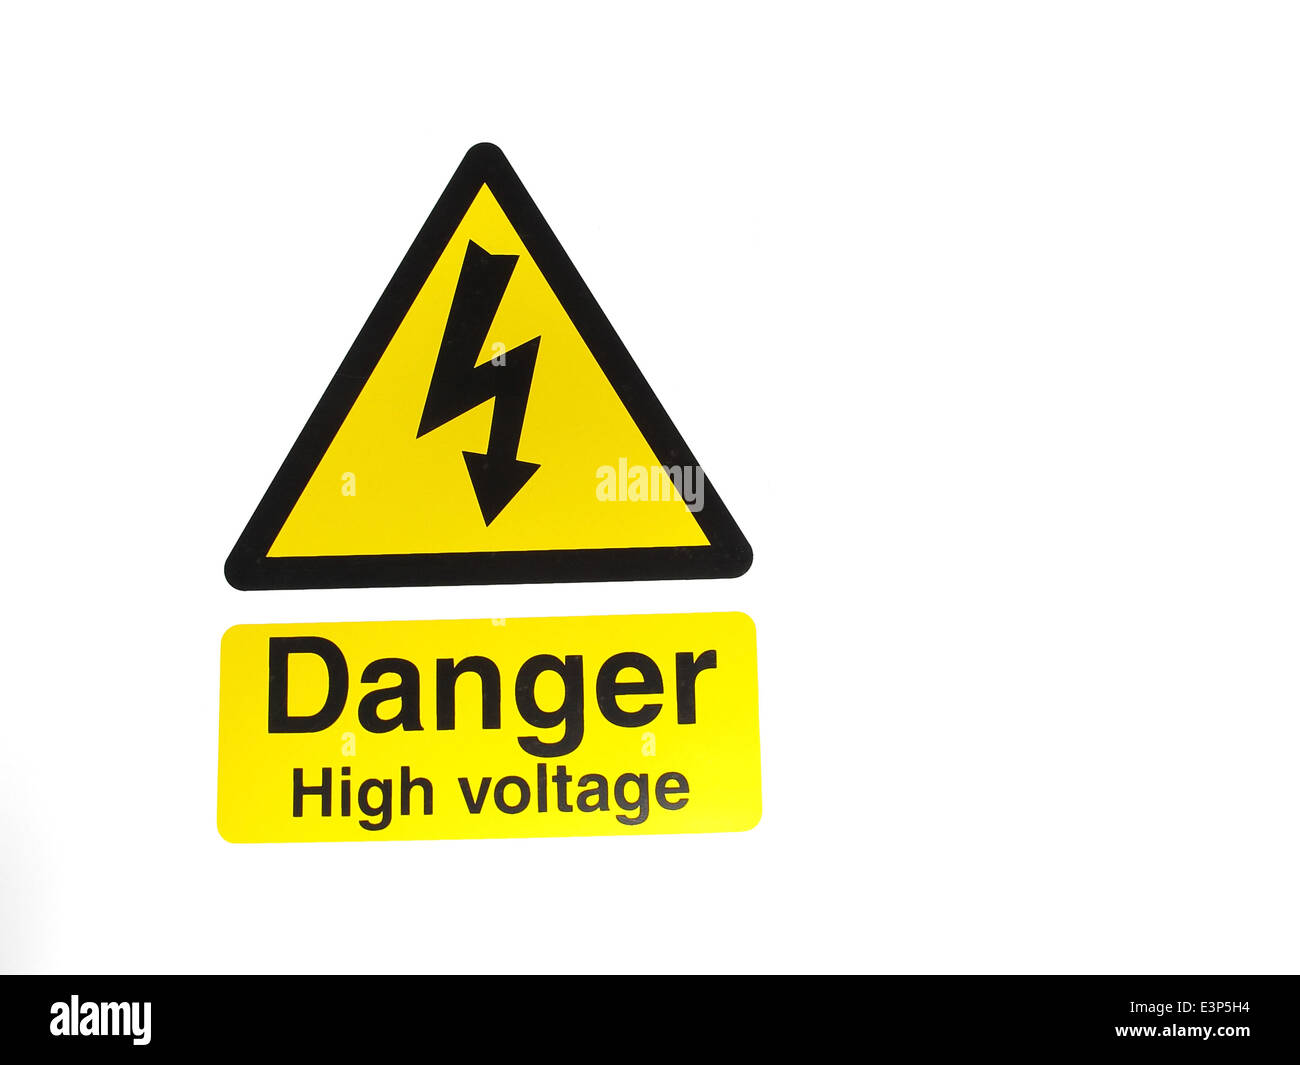 High voltage sign stock photos high voltage sign stock images alamy an electrical warning sign showing danger high voltage stock image buycottarizona Images